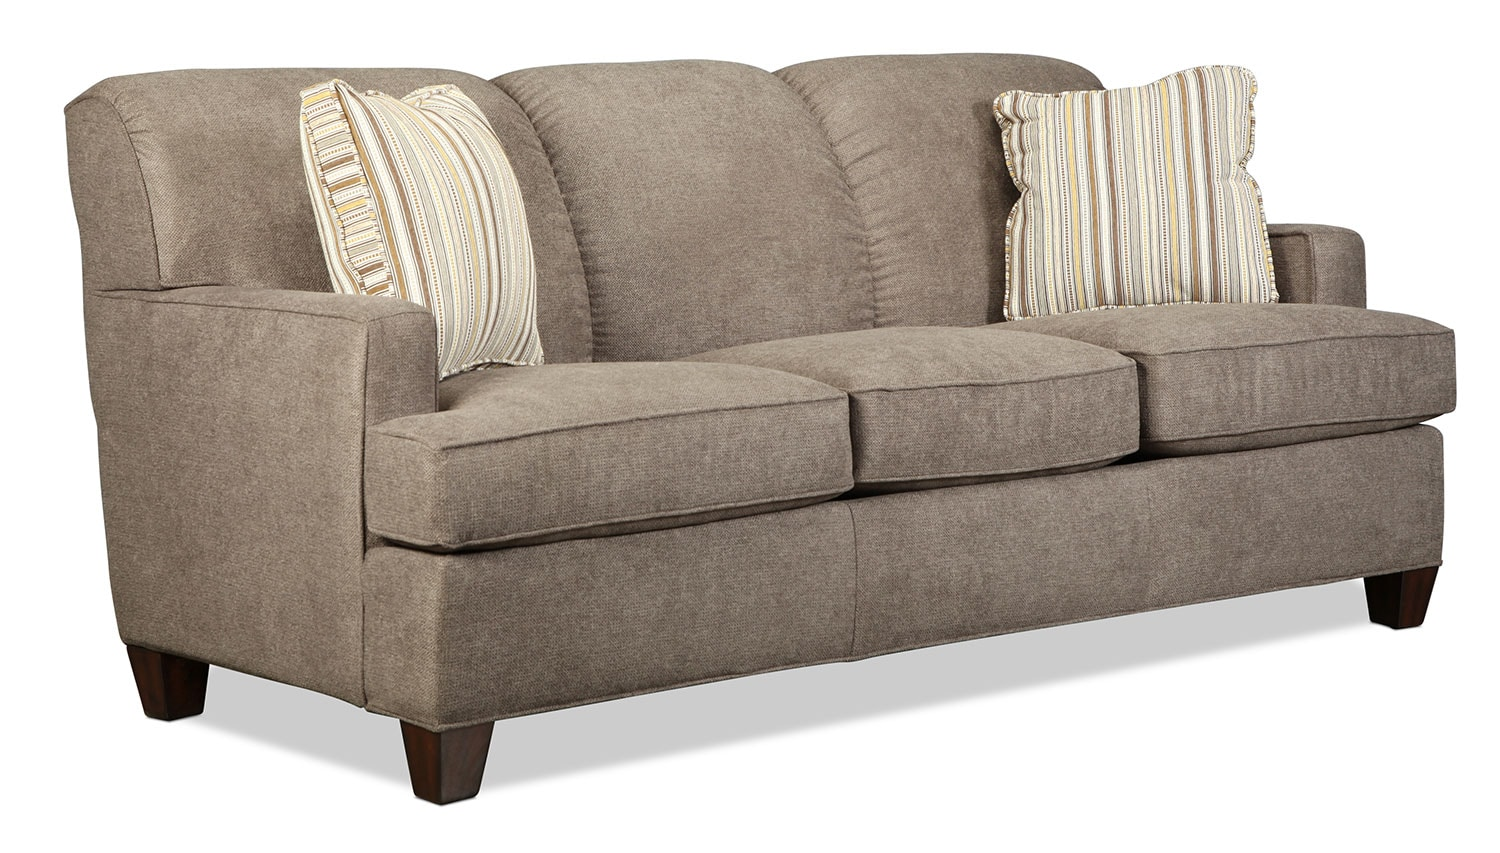 Lonsdale sofa tan levin furniture for Levin furniture sectional sofa